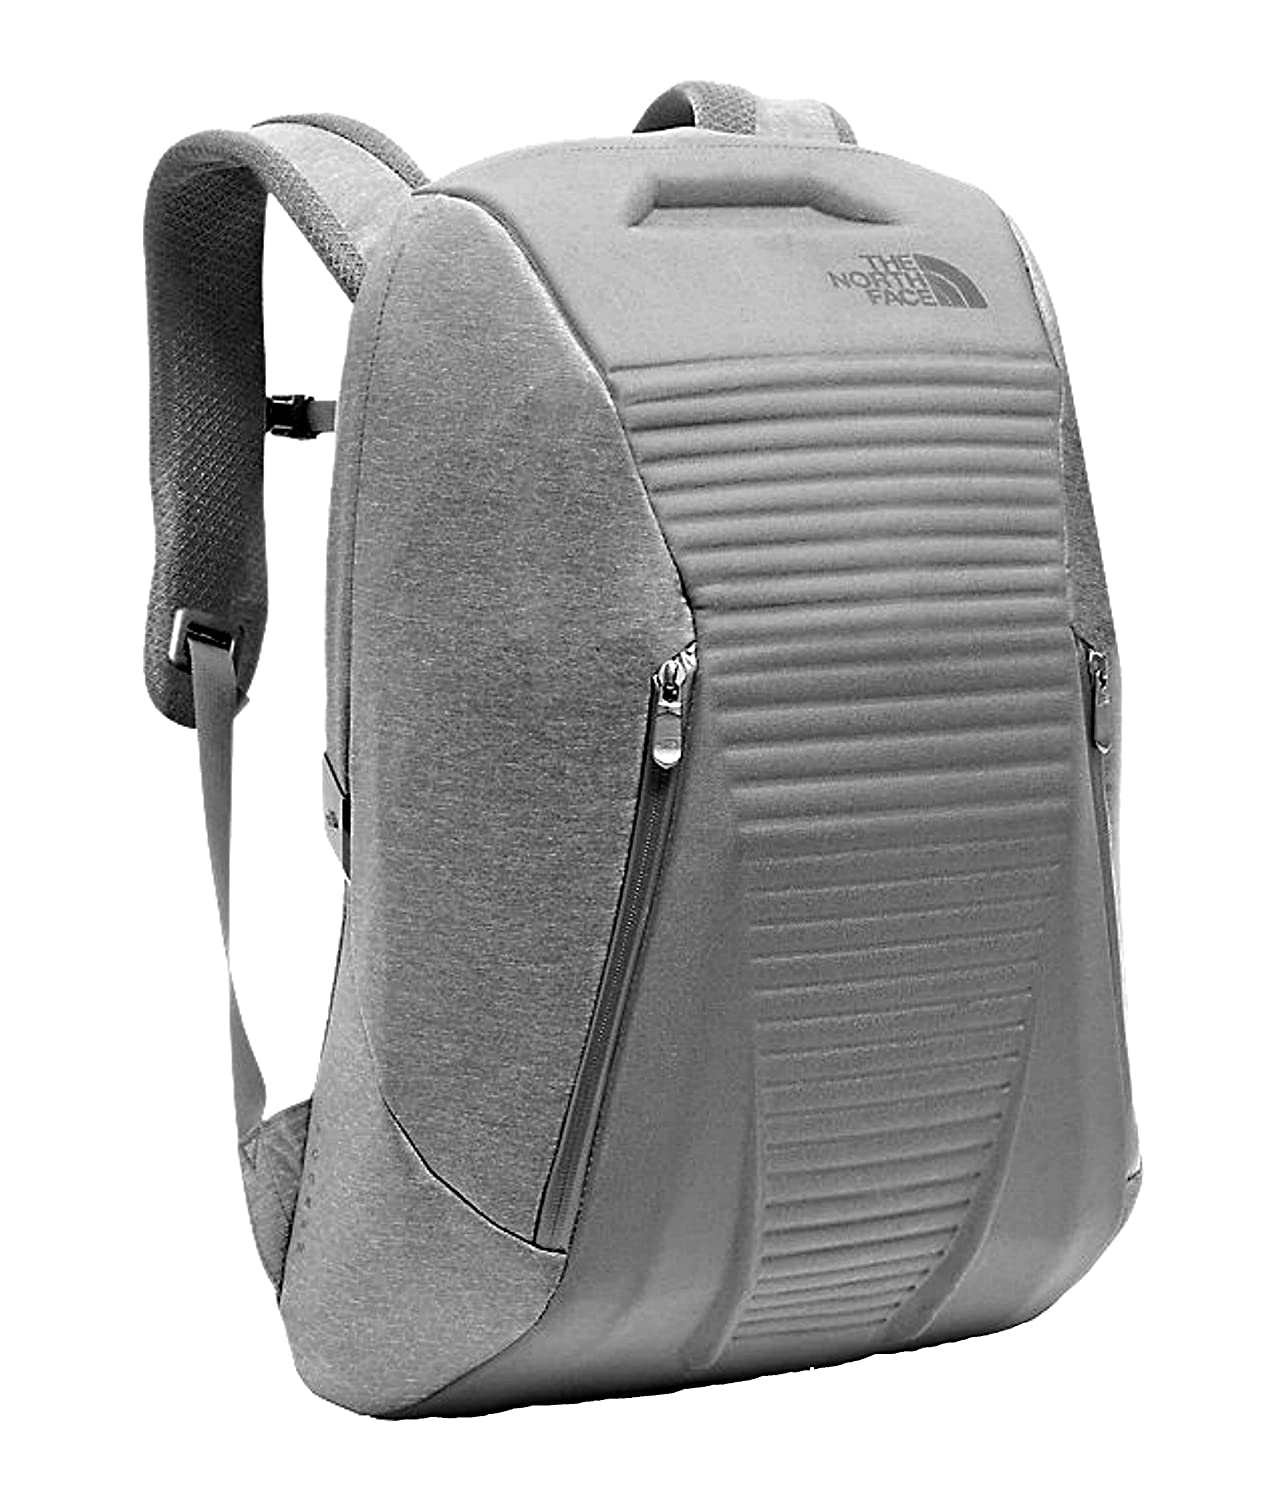 161f2d5ebed Amazon.com : The North Face Access Pack Backpack : Sports & Outdoors